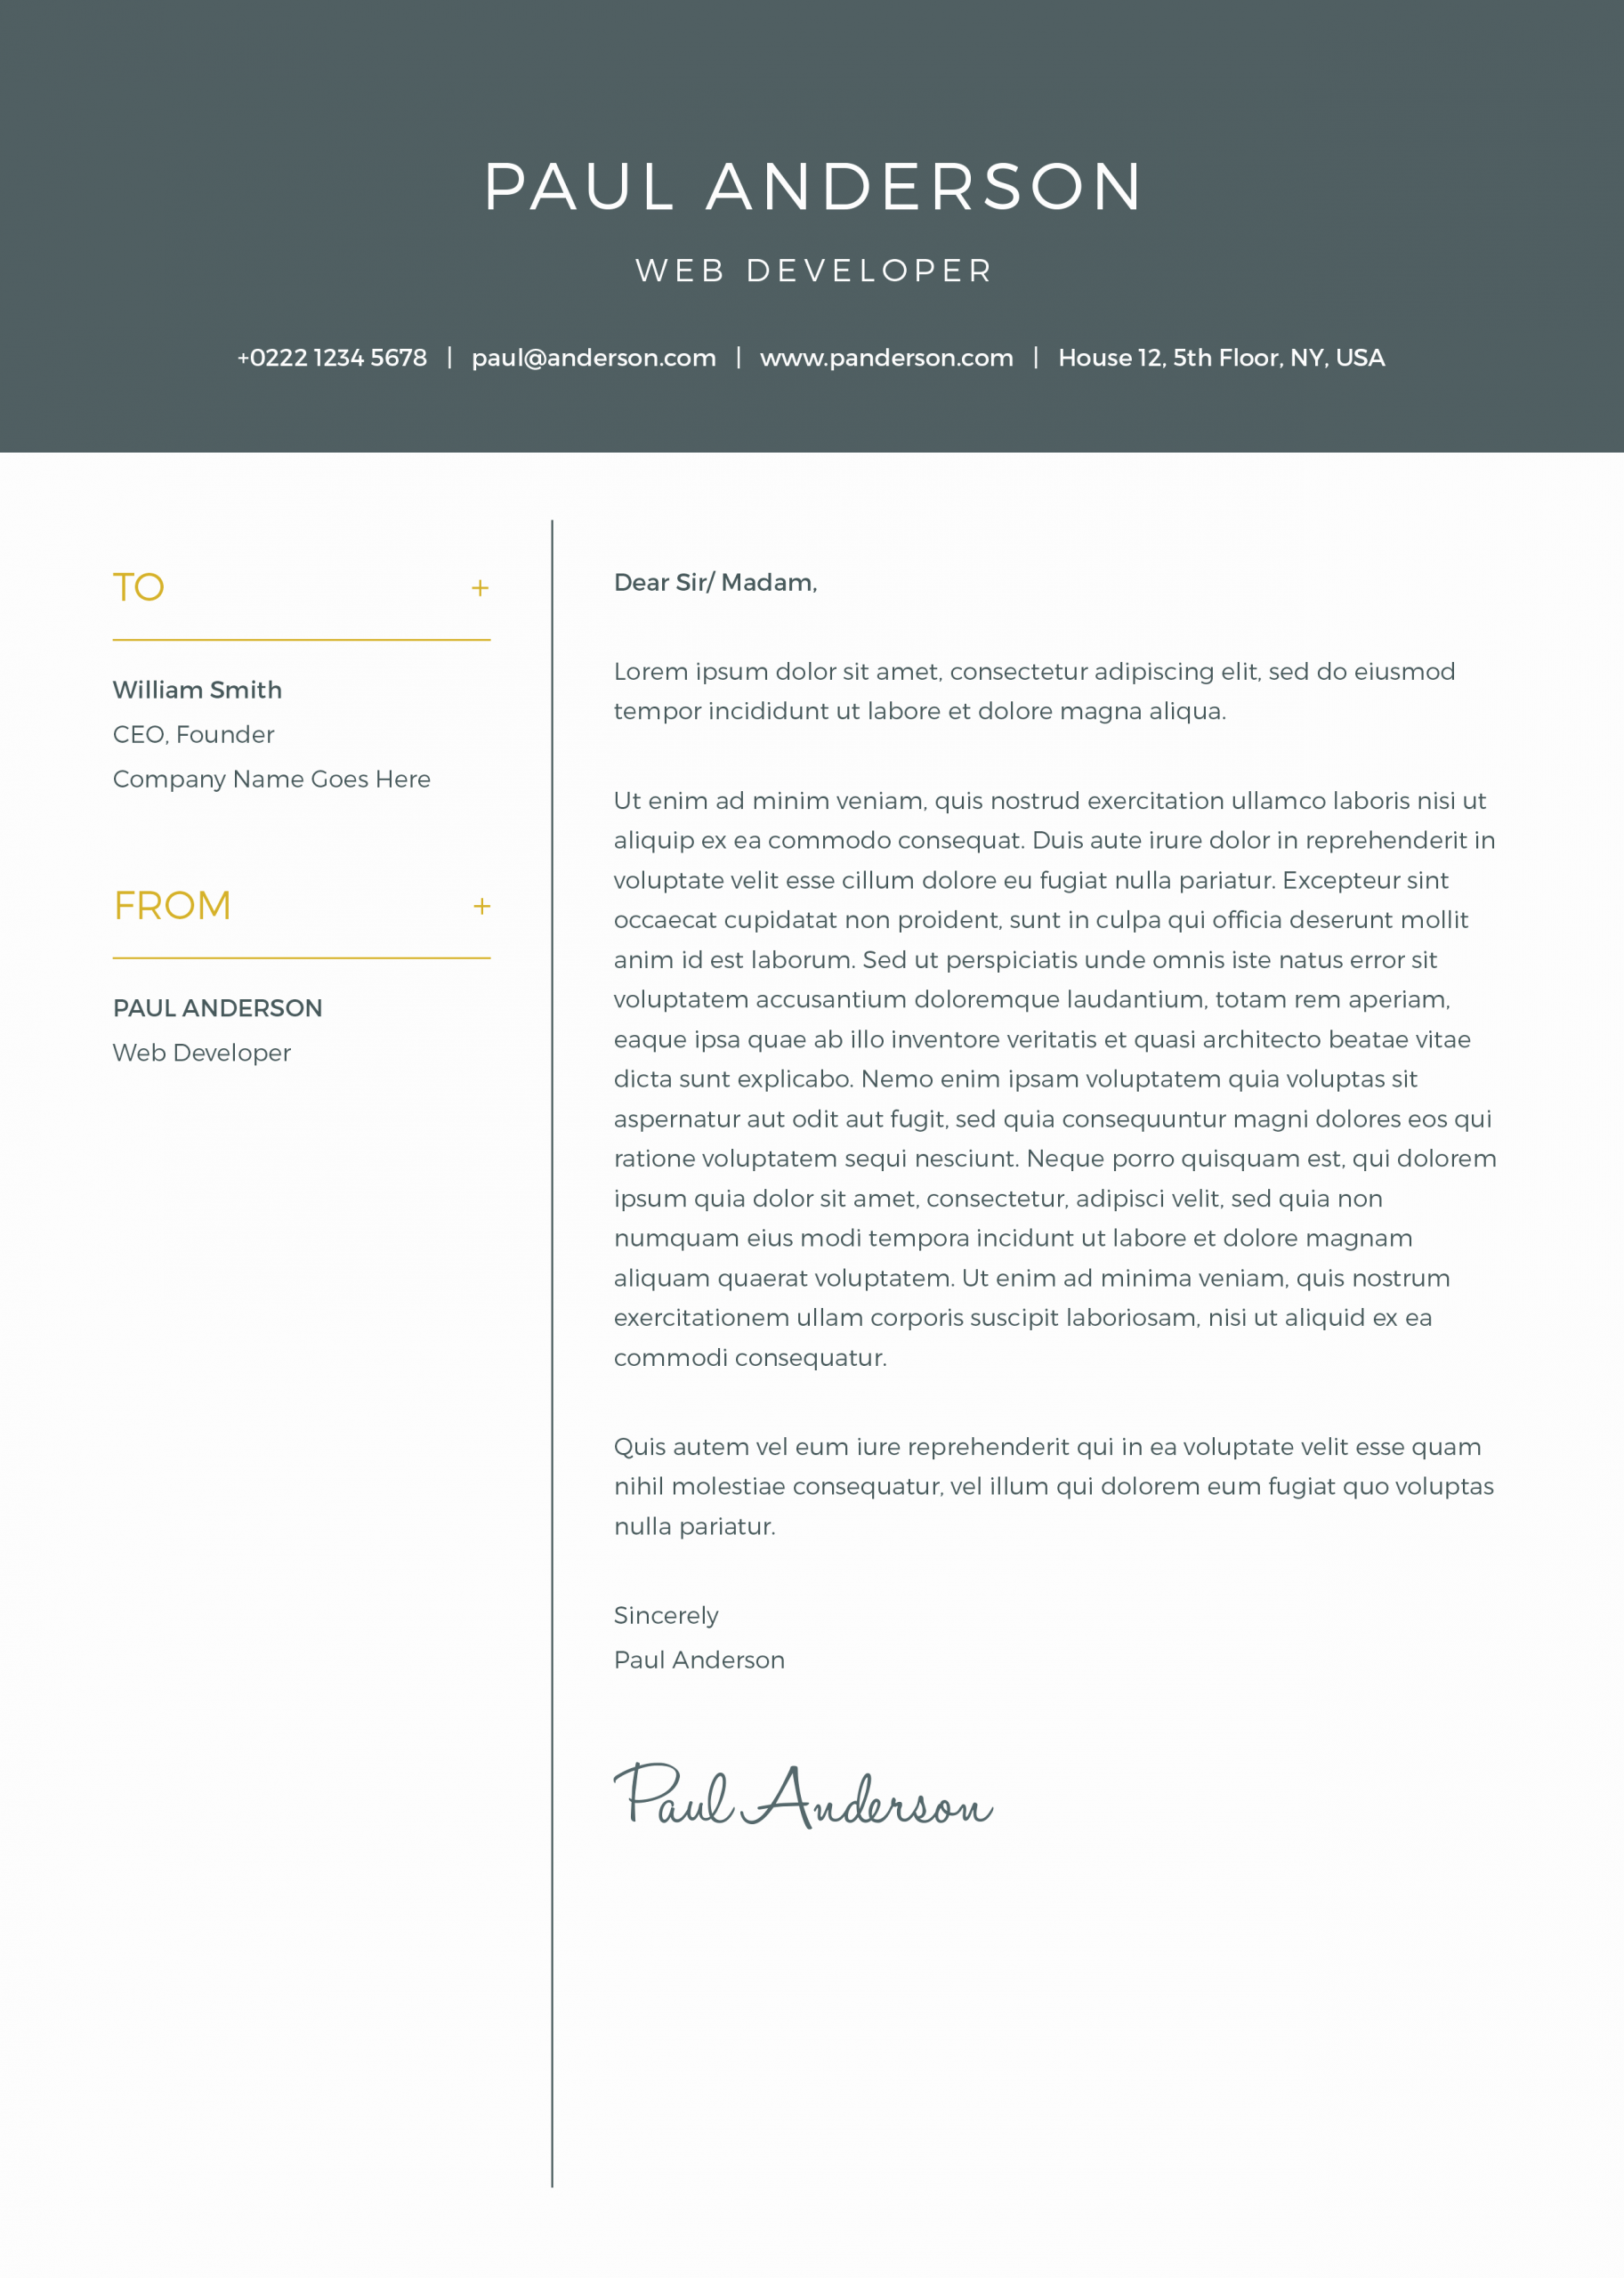 Cover Letter Template Google Drive Inspirational 75 Best